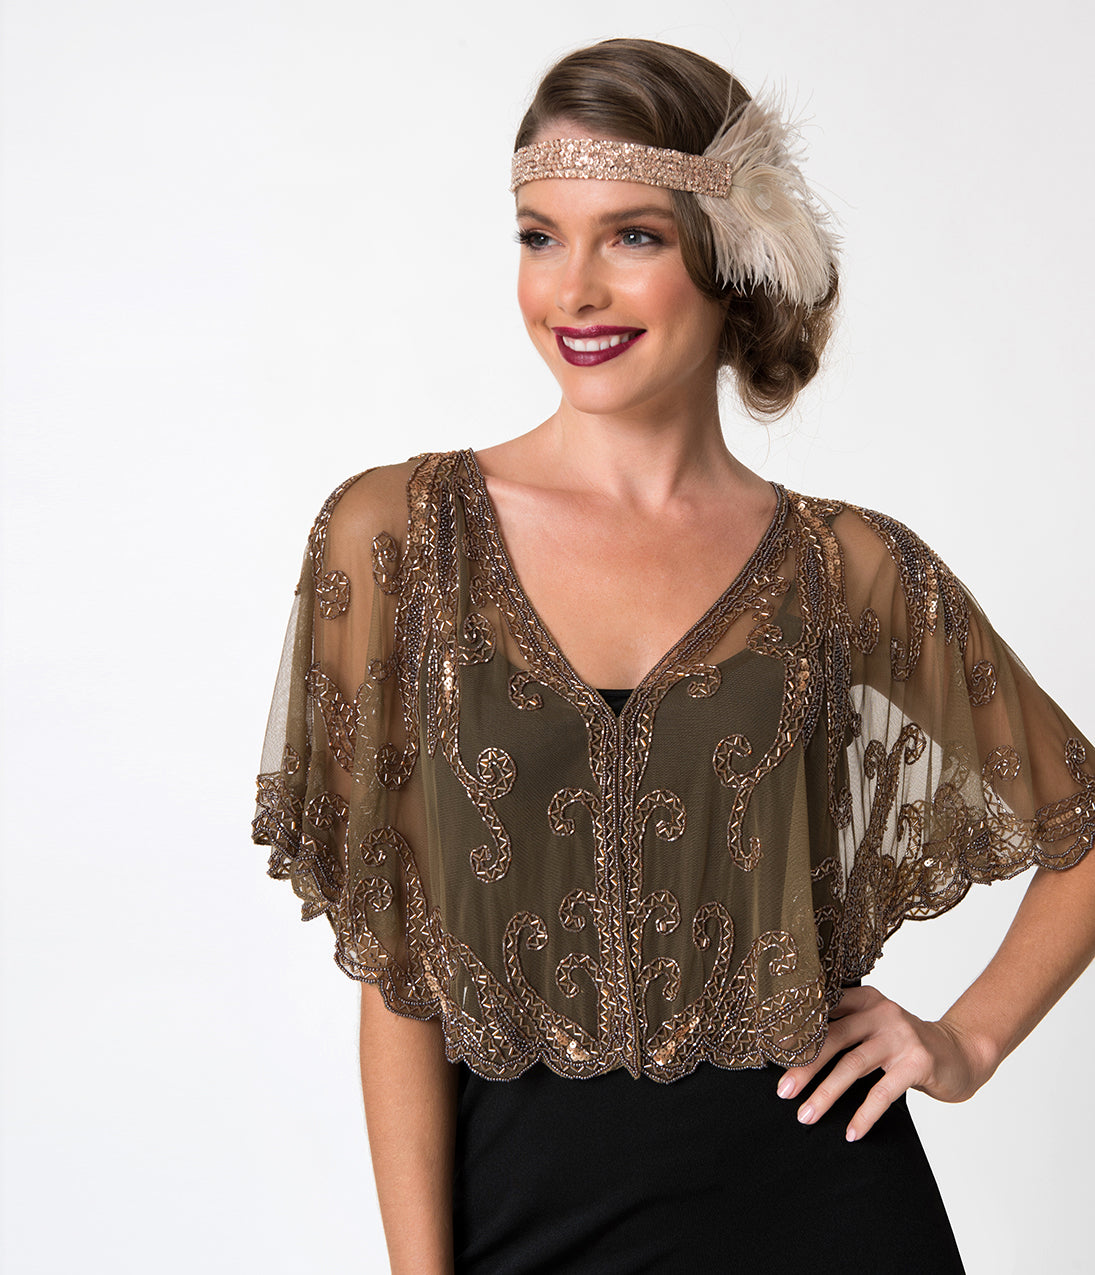 Shawls & Wraps | Fur Stole, Lace, Fringe 1920S Style Brown  Dusty Rose Gold Beaded Sheer Mesh Capelet $68.00 AT vintagedancer.com